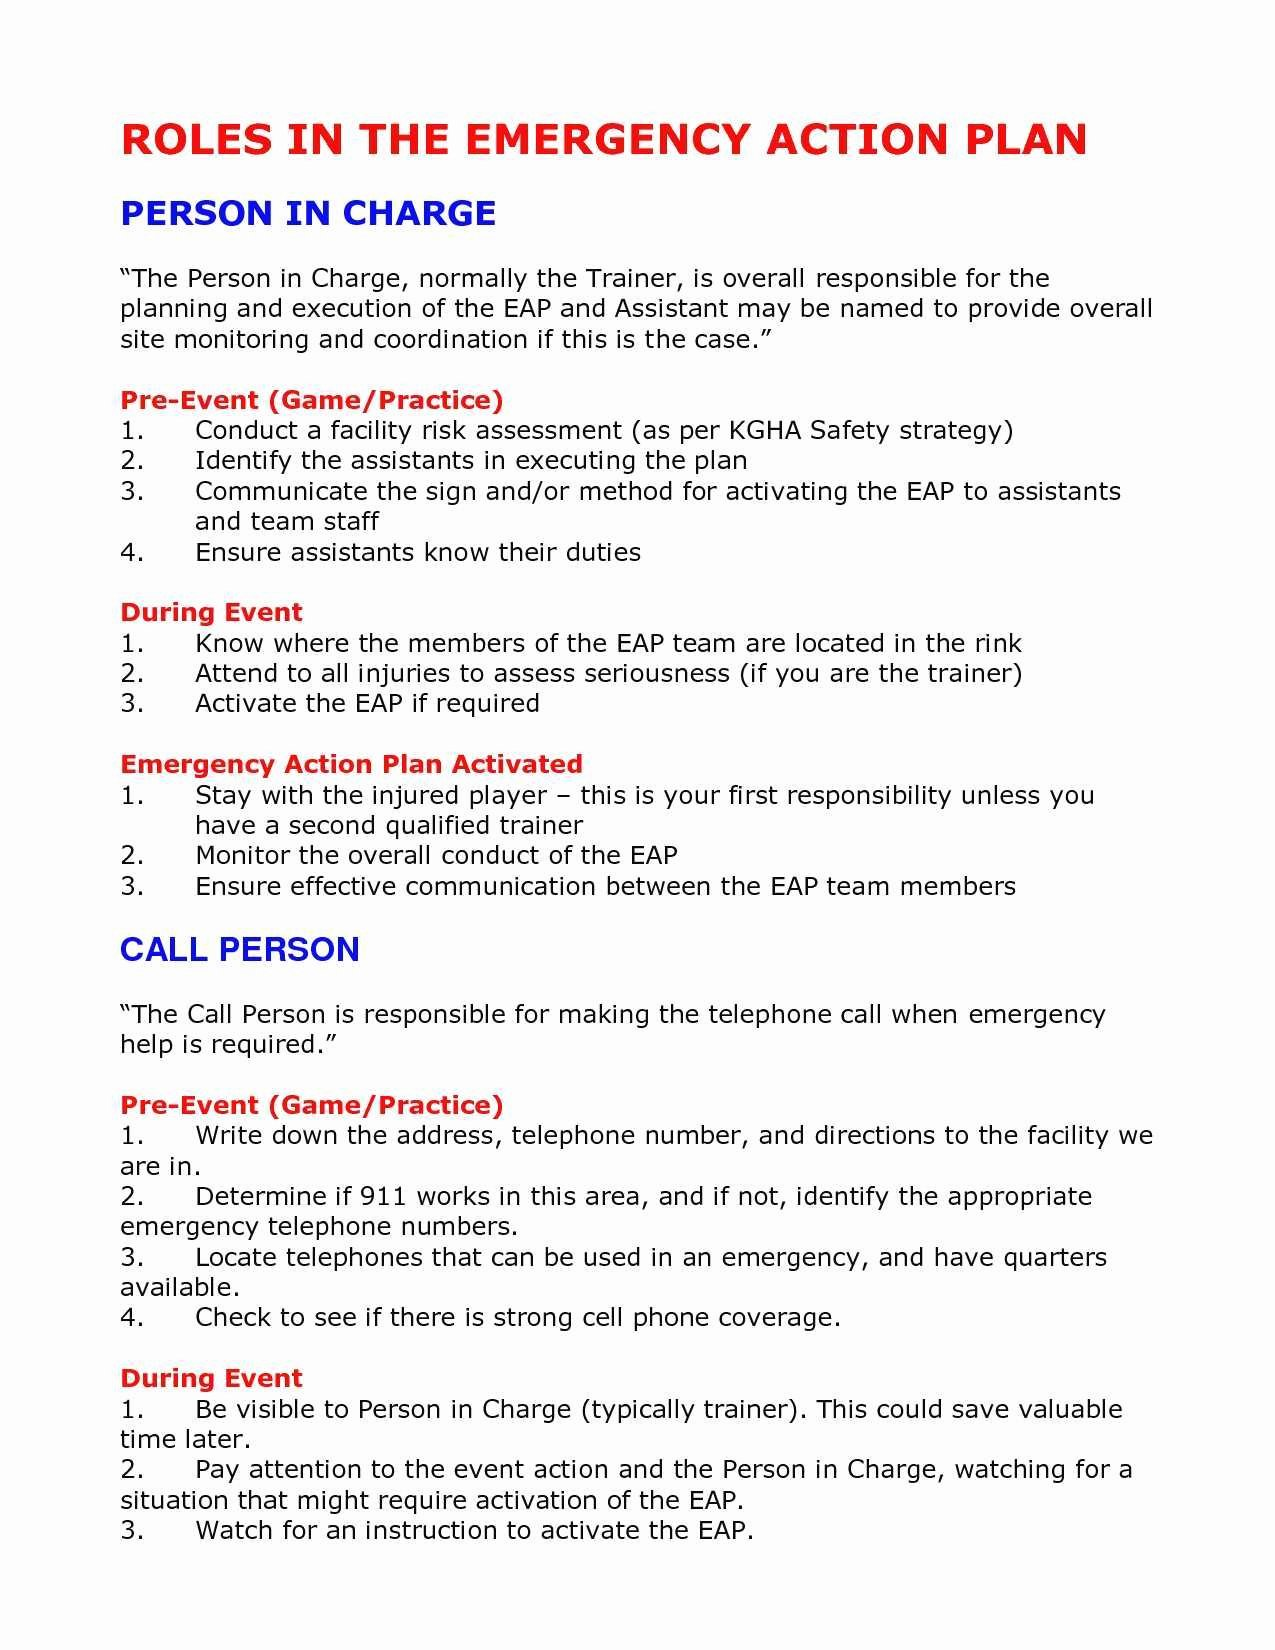 Emergency Operations Plan Template Inspirational Elegant Emergency Operations Plan Template California